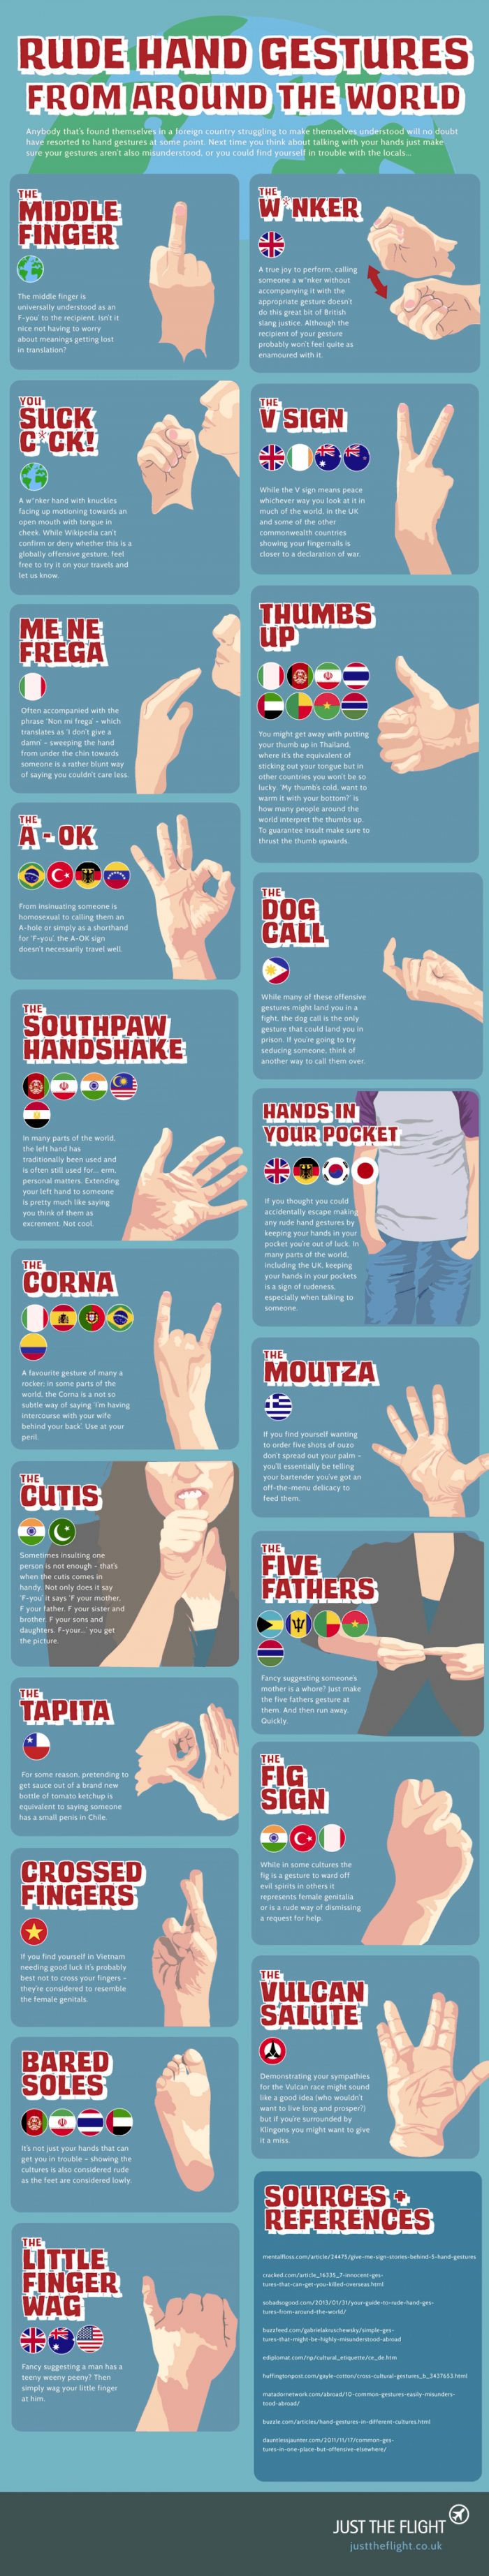 Rude Gestures From Around The World You Just Might Need One Day